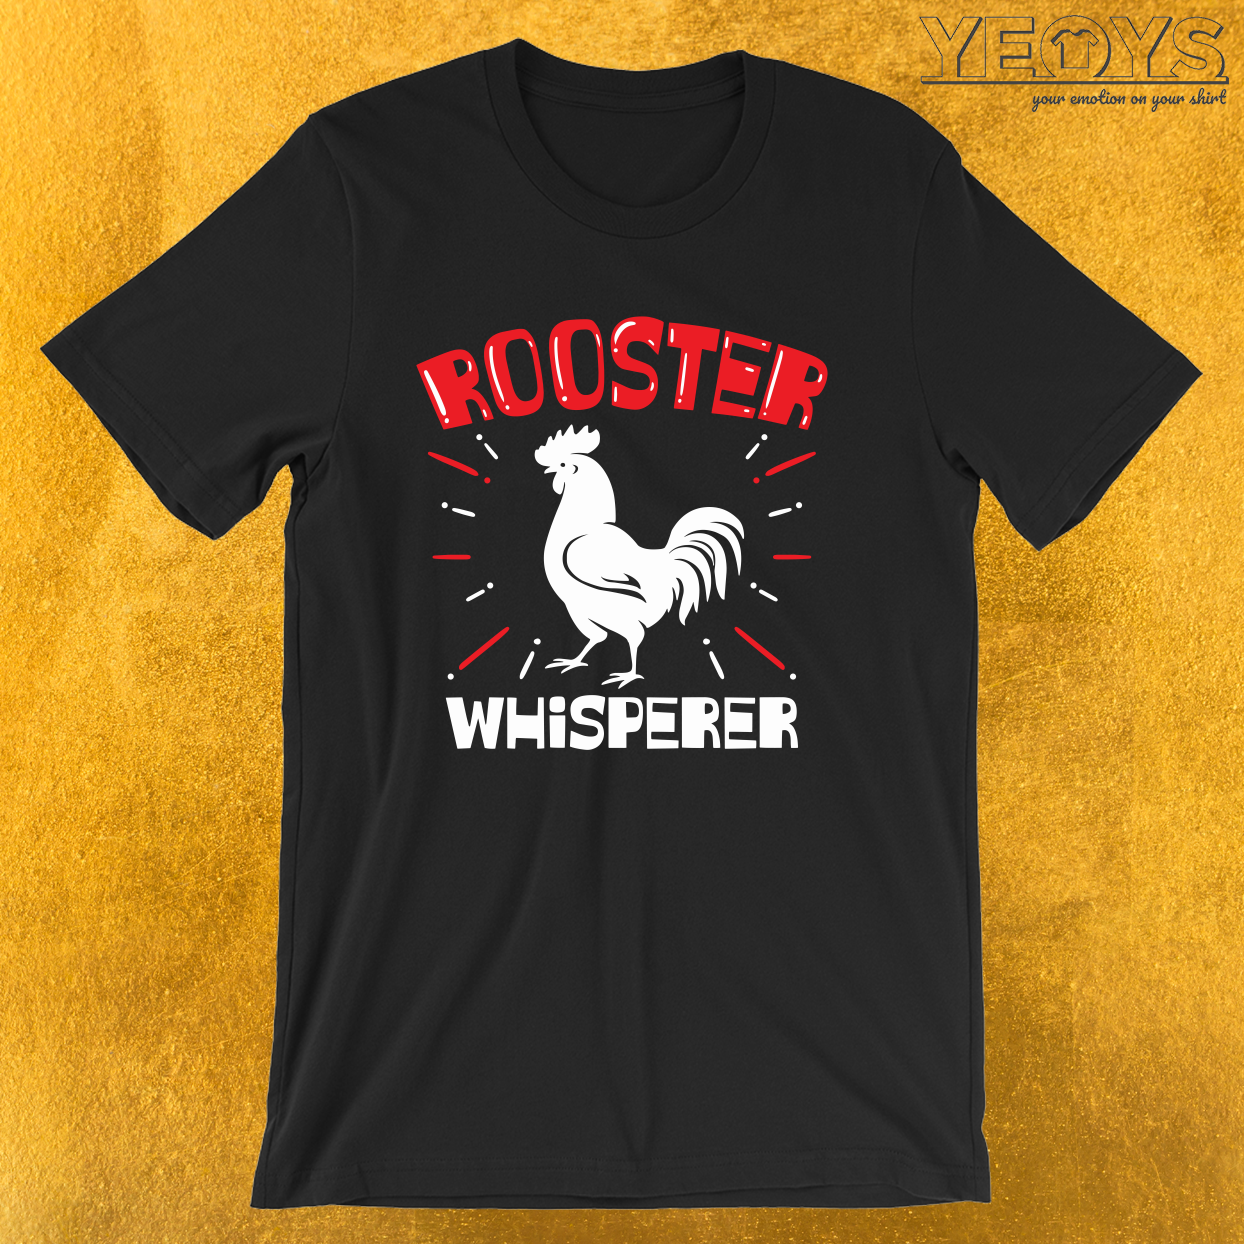 Rooster Whisperer – Chicken Farmers Tee